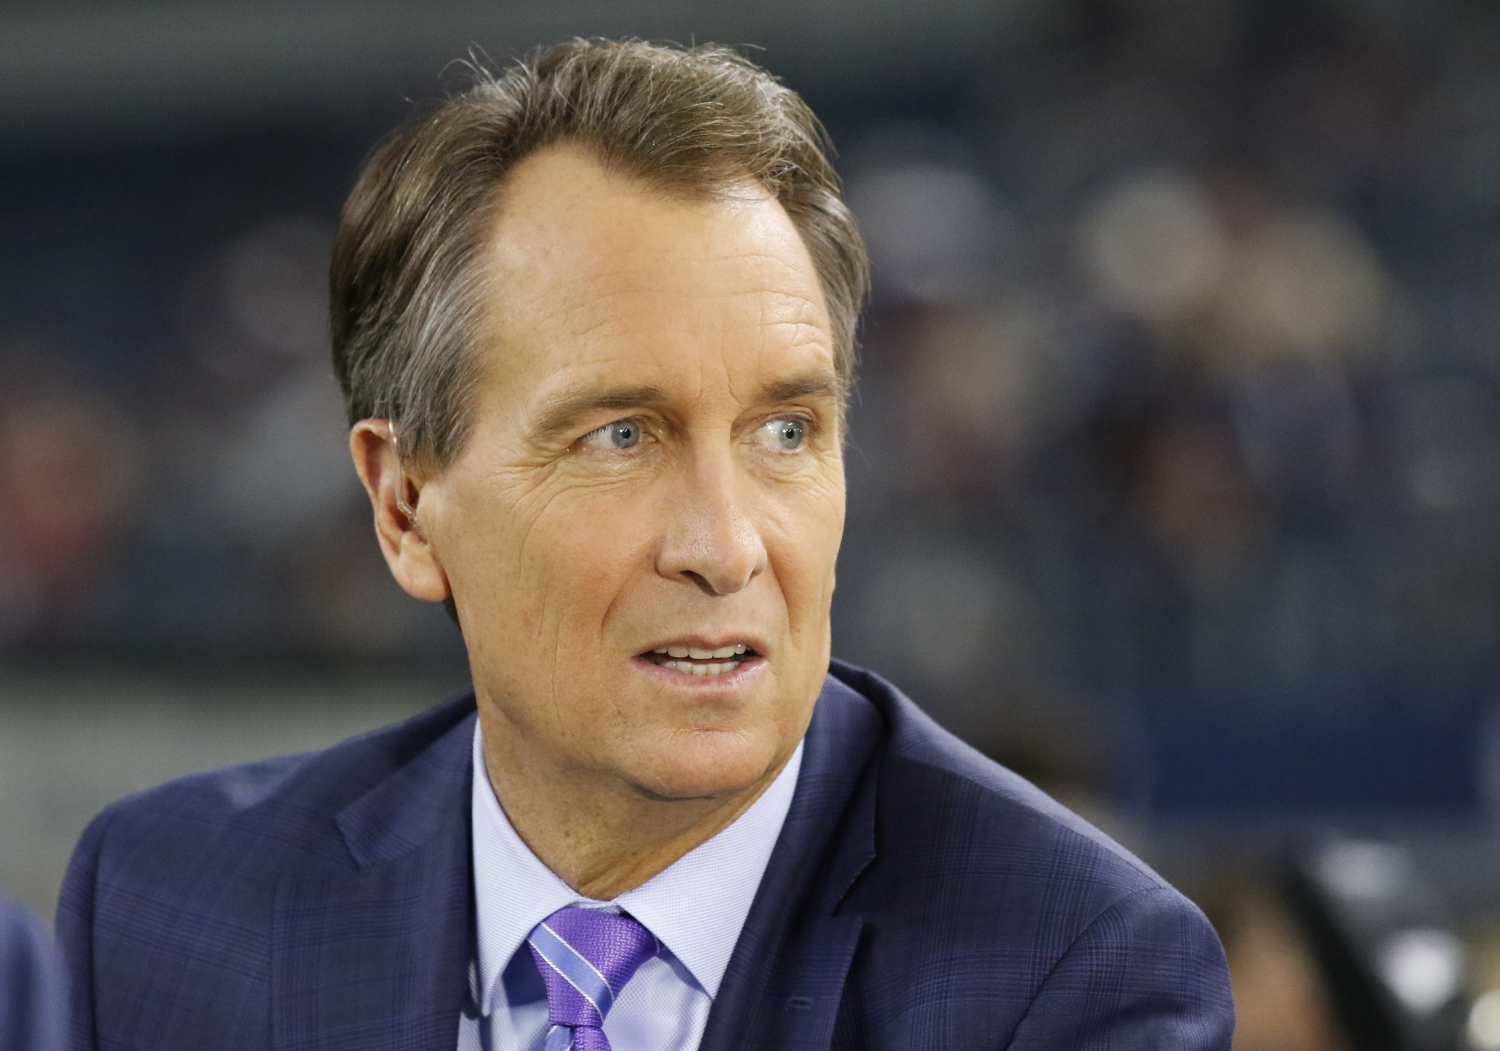 Cris Collinsworth Once Tried Canceling a Media Responsibility Because of a 'Massive Zit'